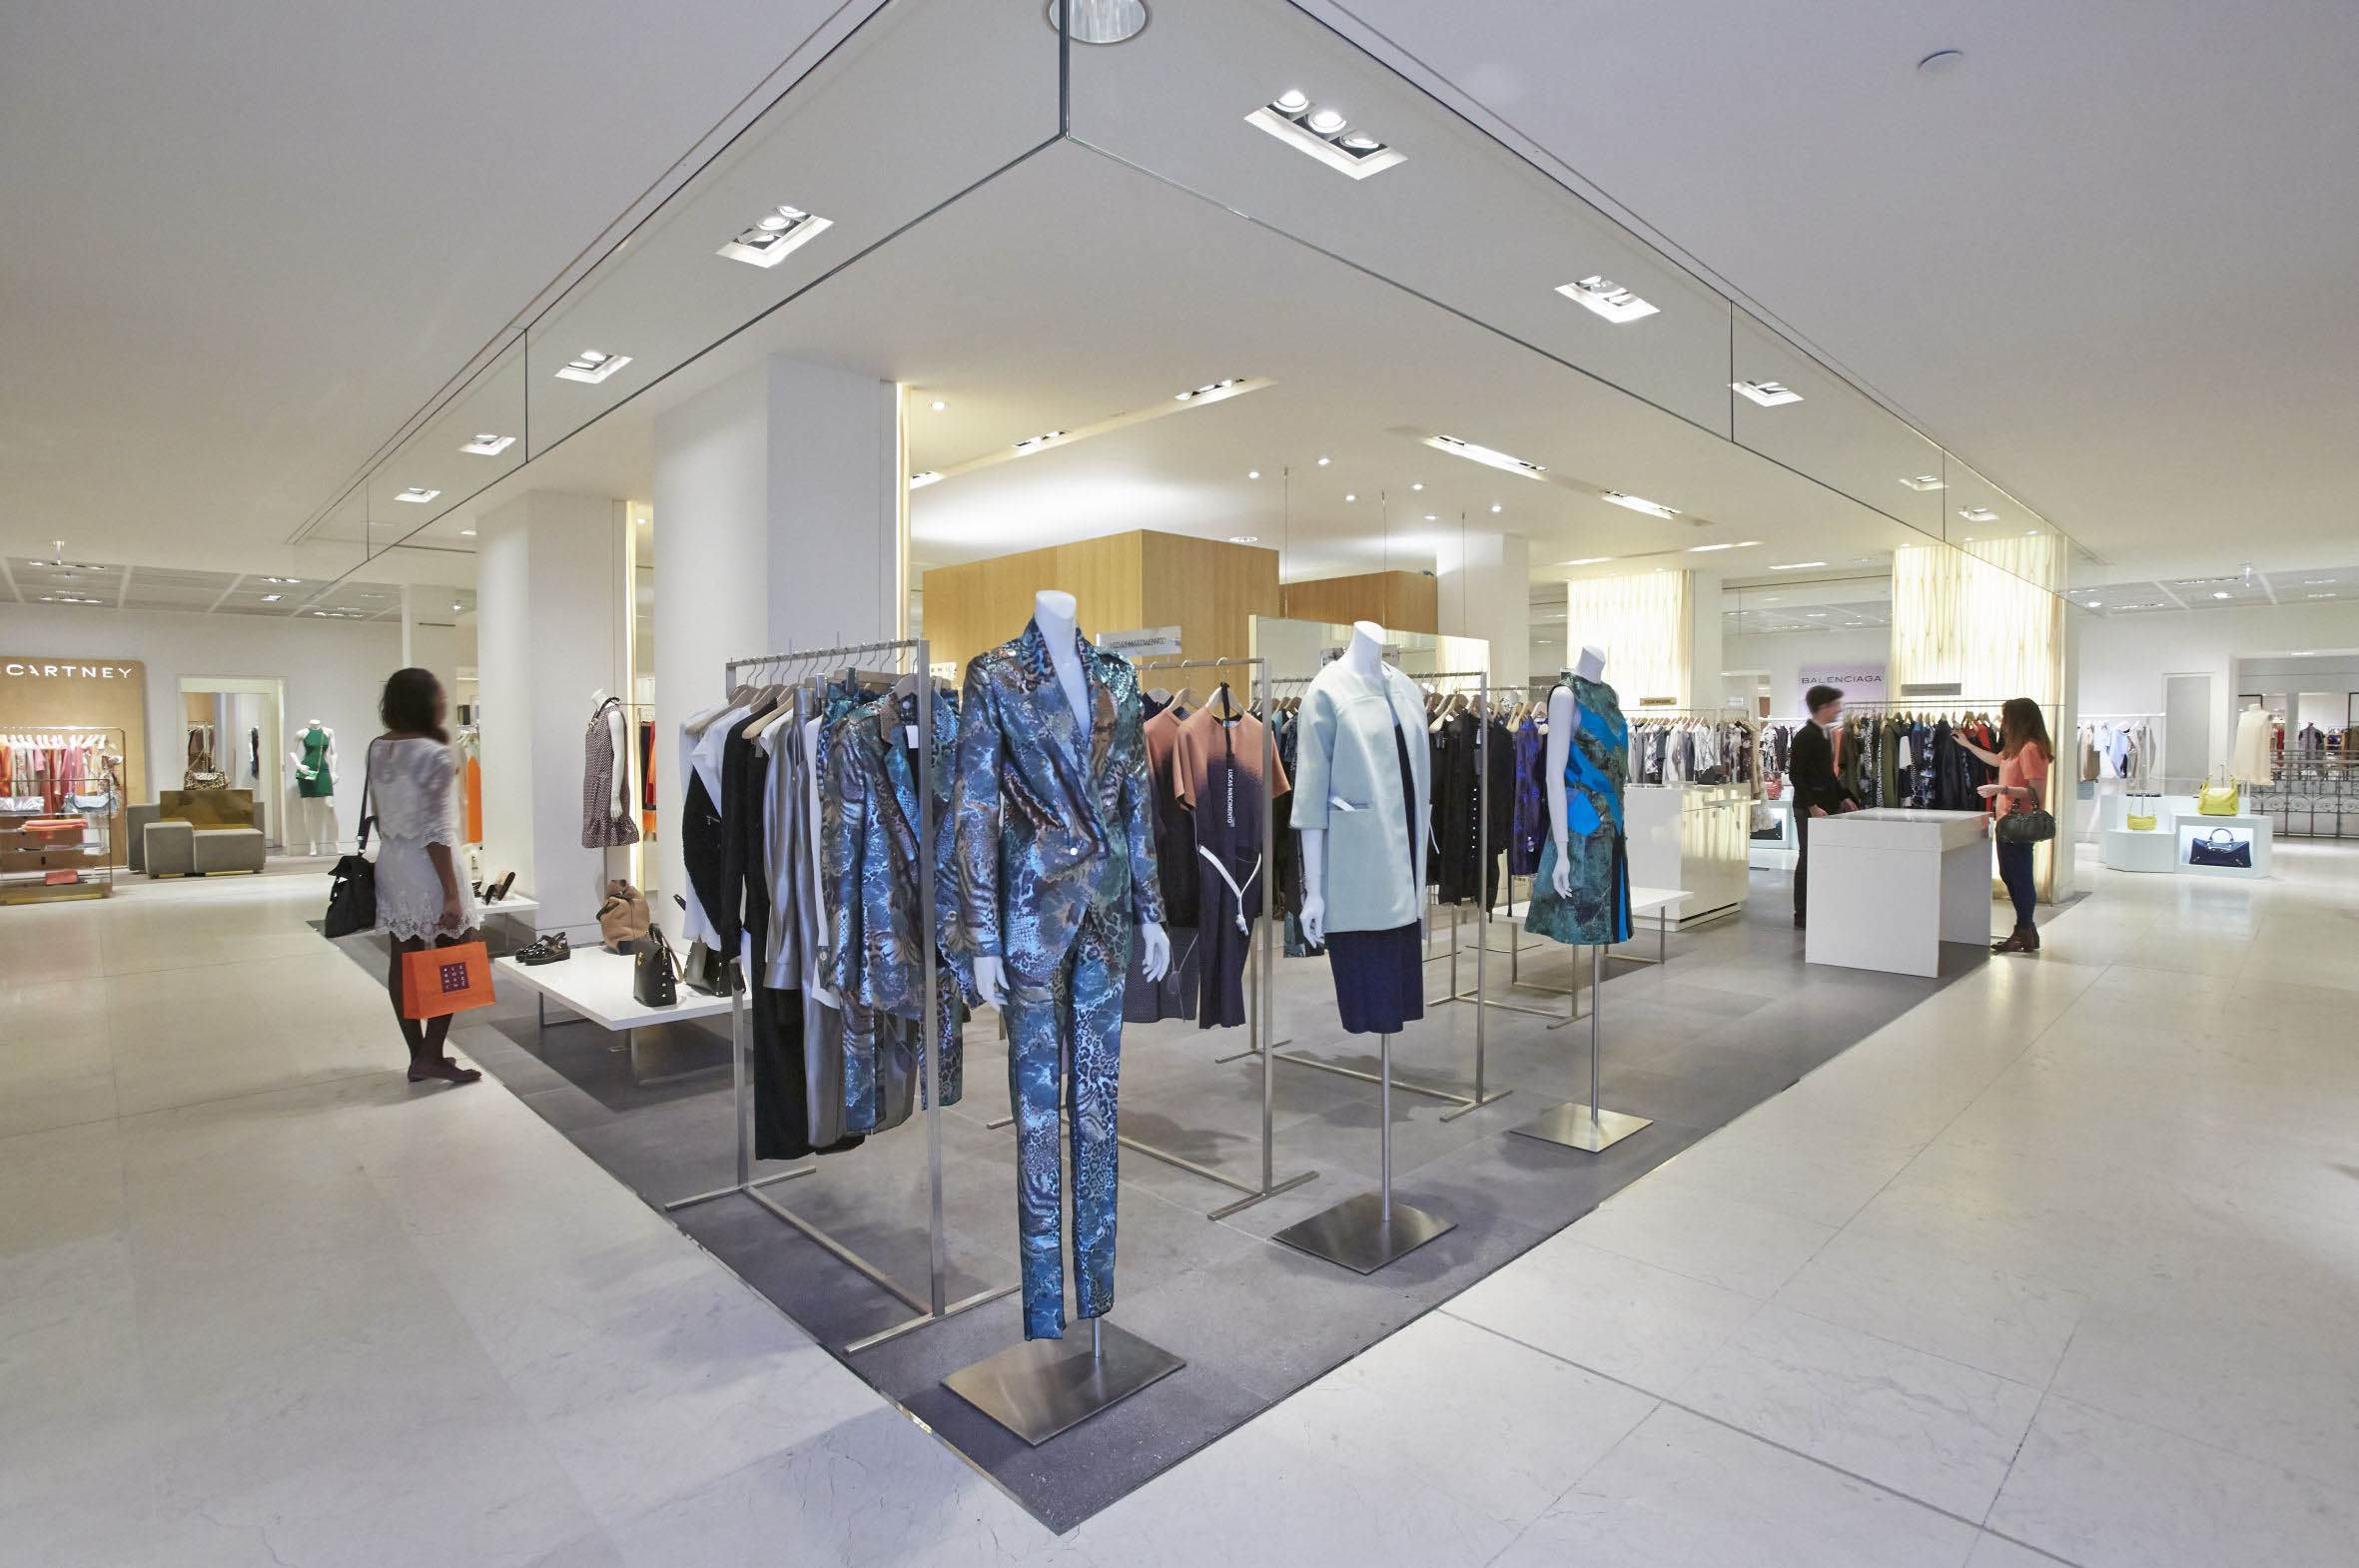 chanel bon marche store - photo#32